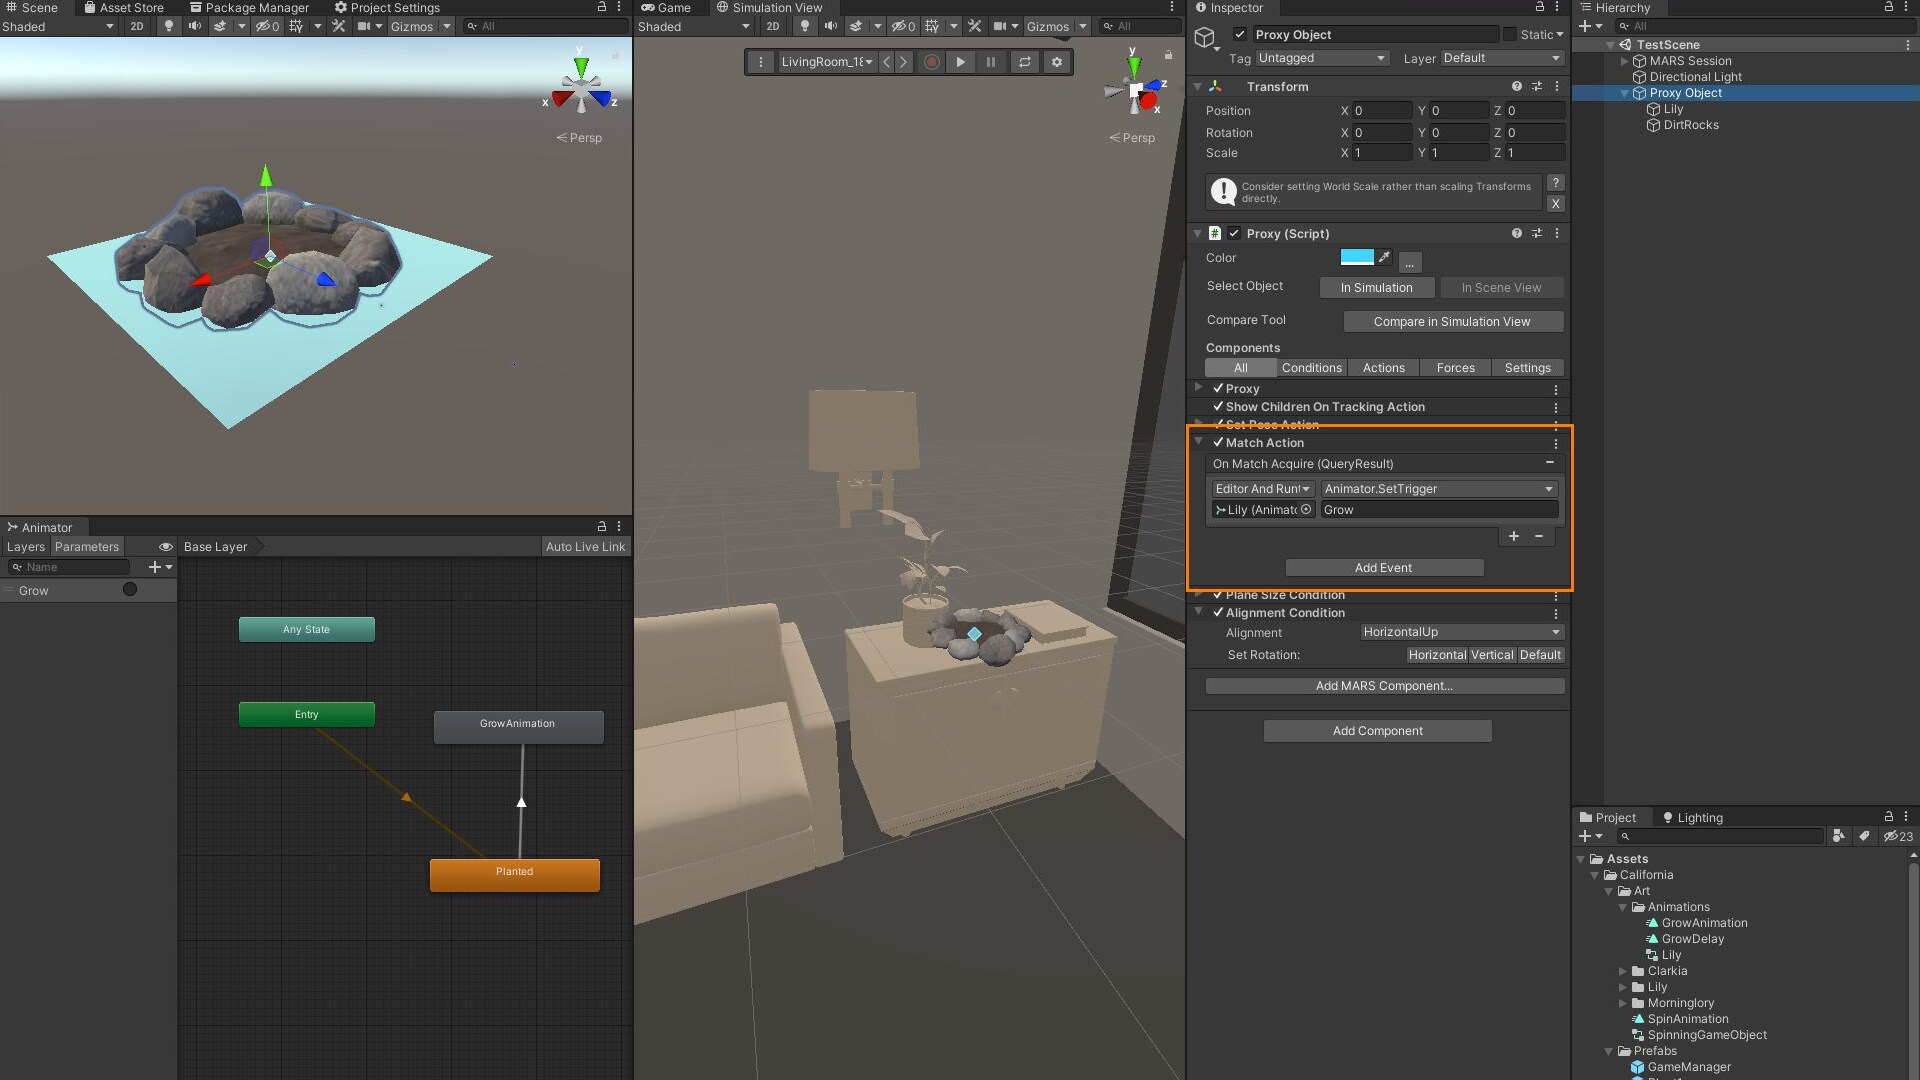 Menus in the Unity editor are on the right. Simulation view has an animated interior of a room